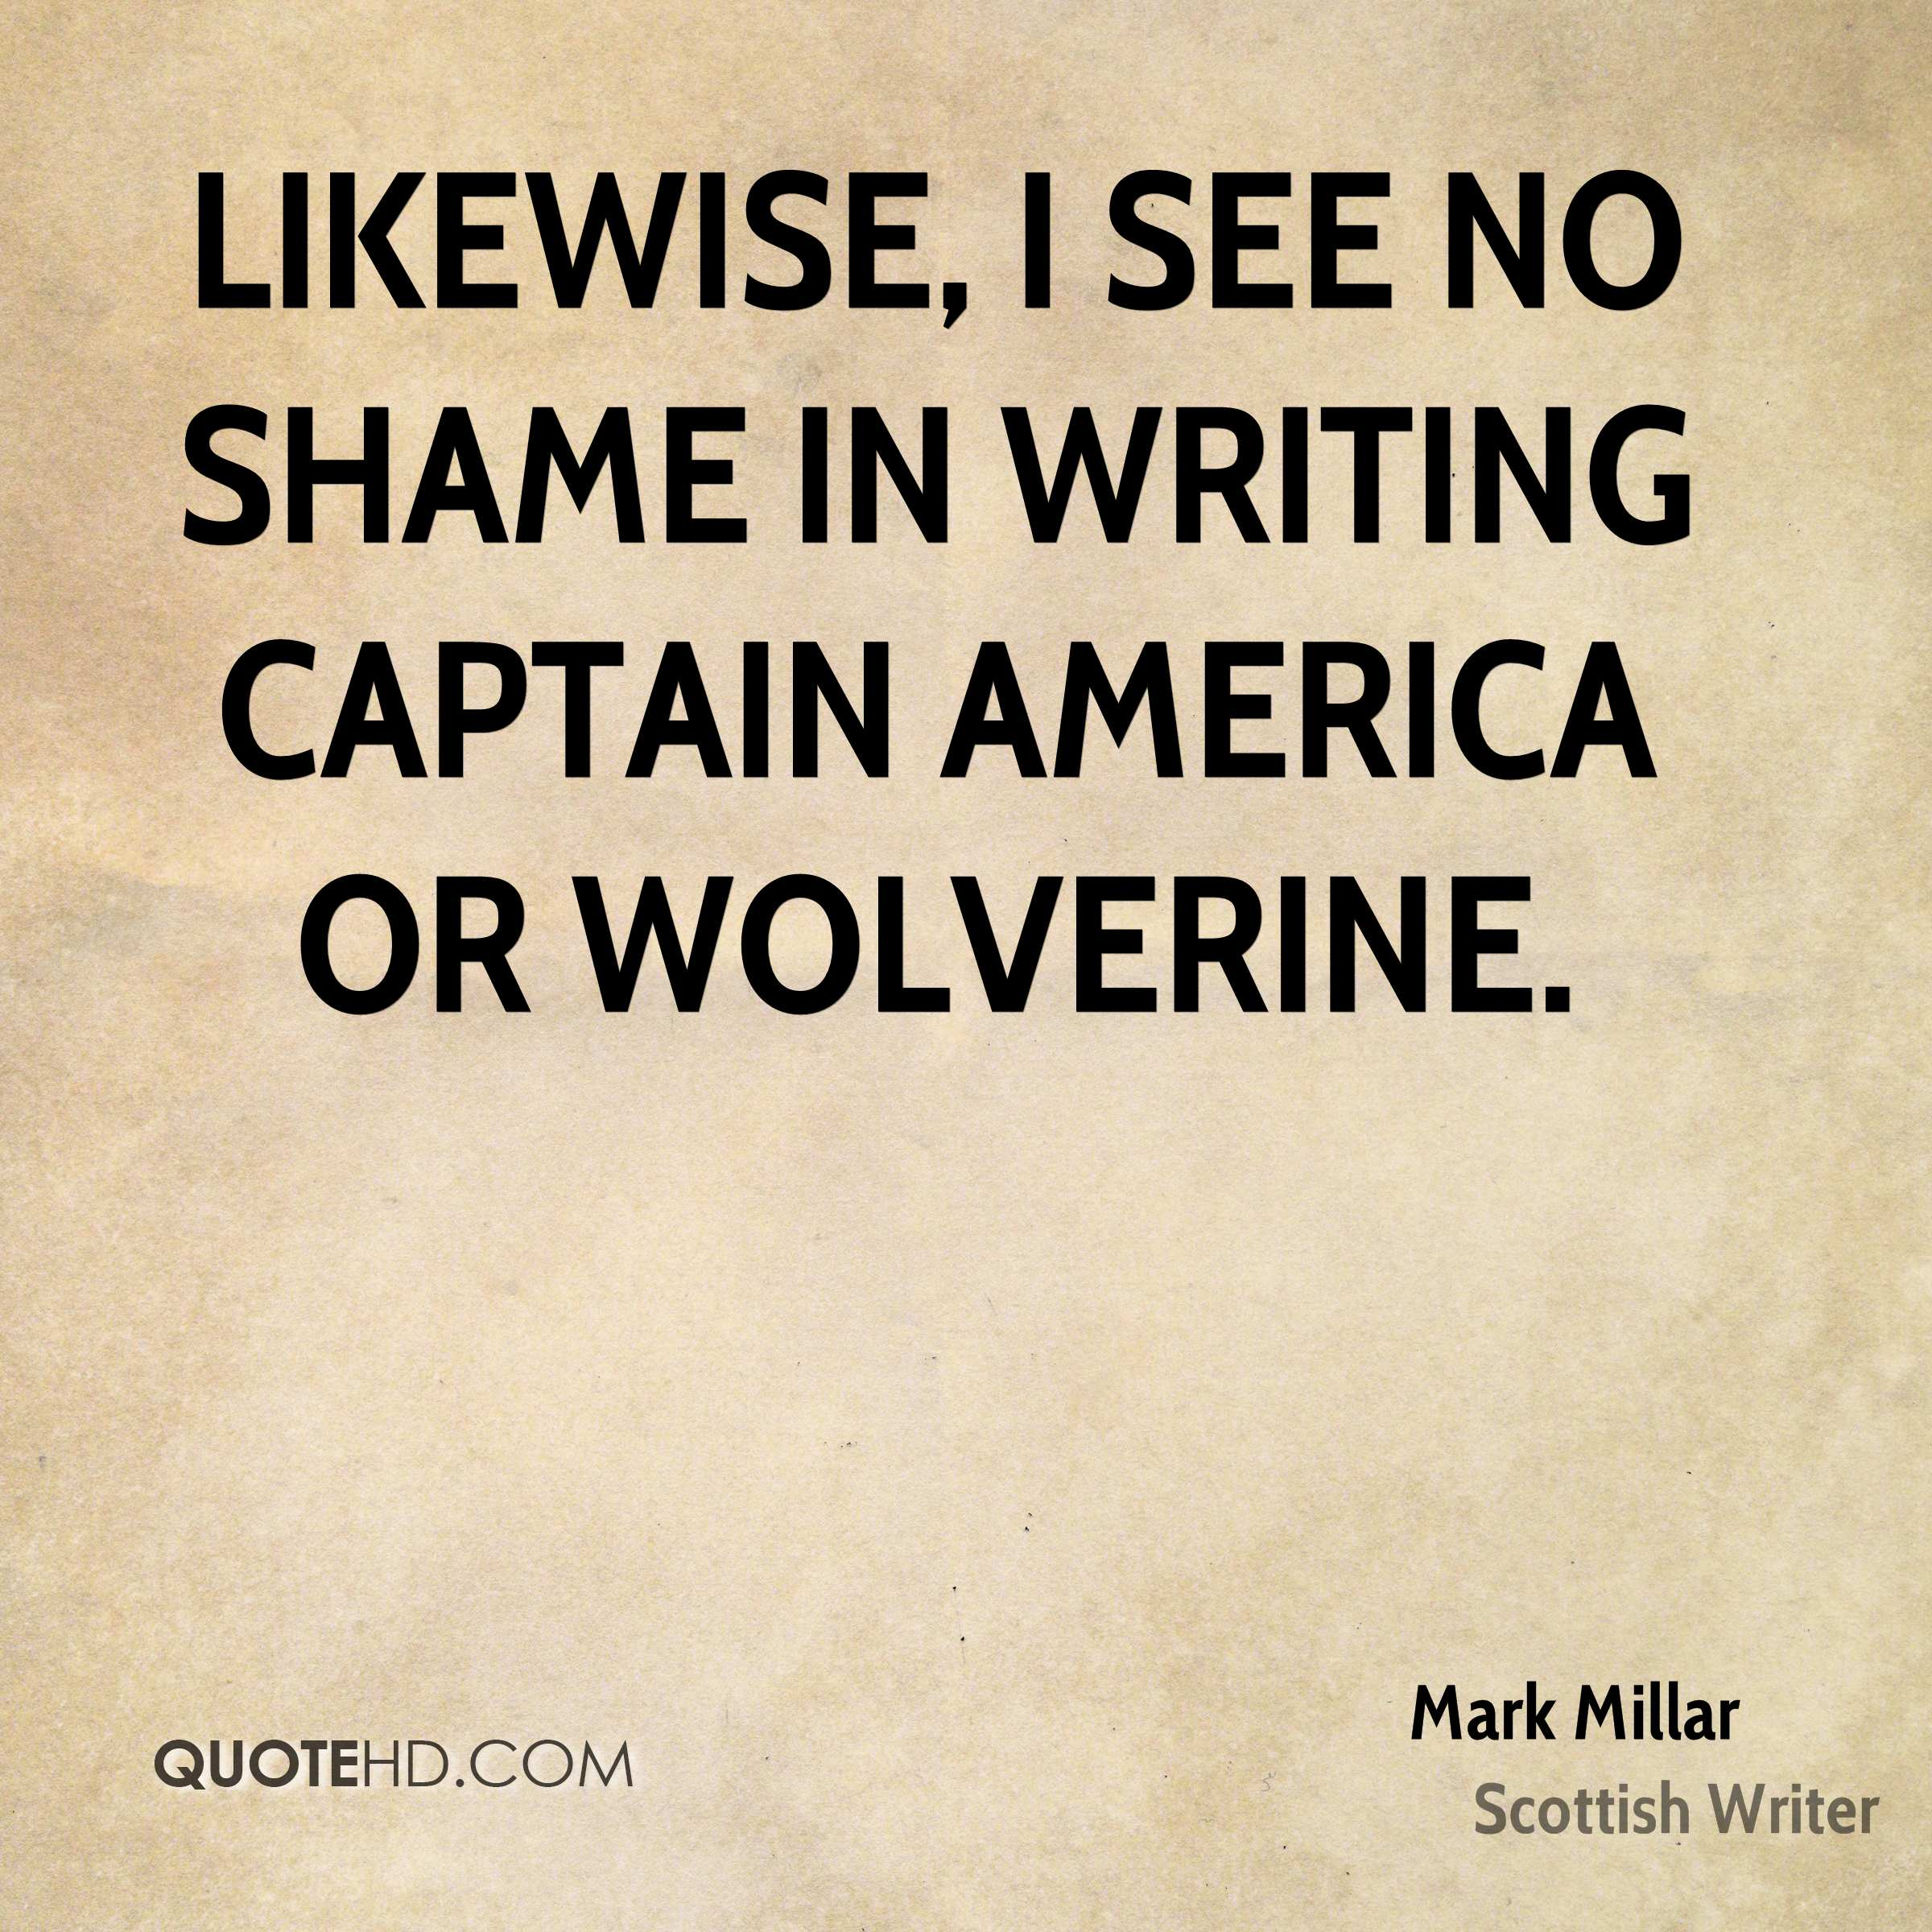 Likewise, I see no shame in writing Captain America or Wolverine.